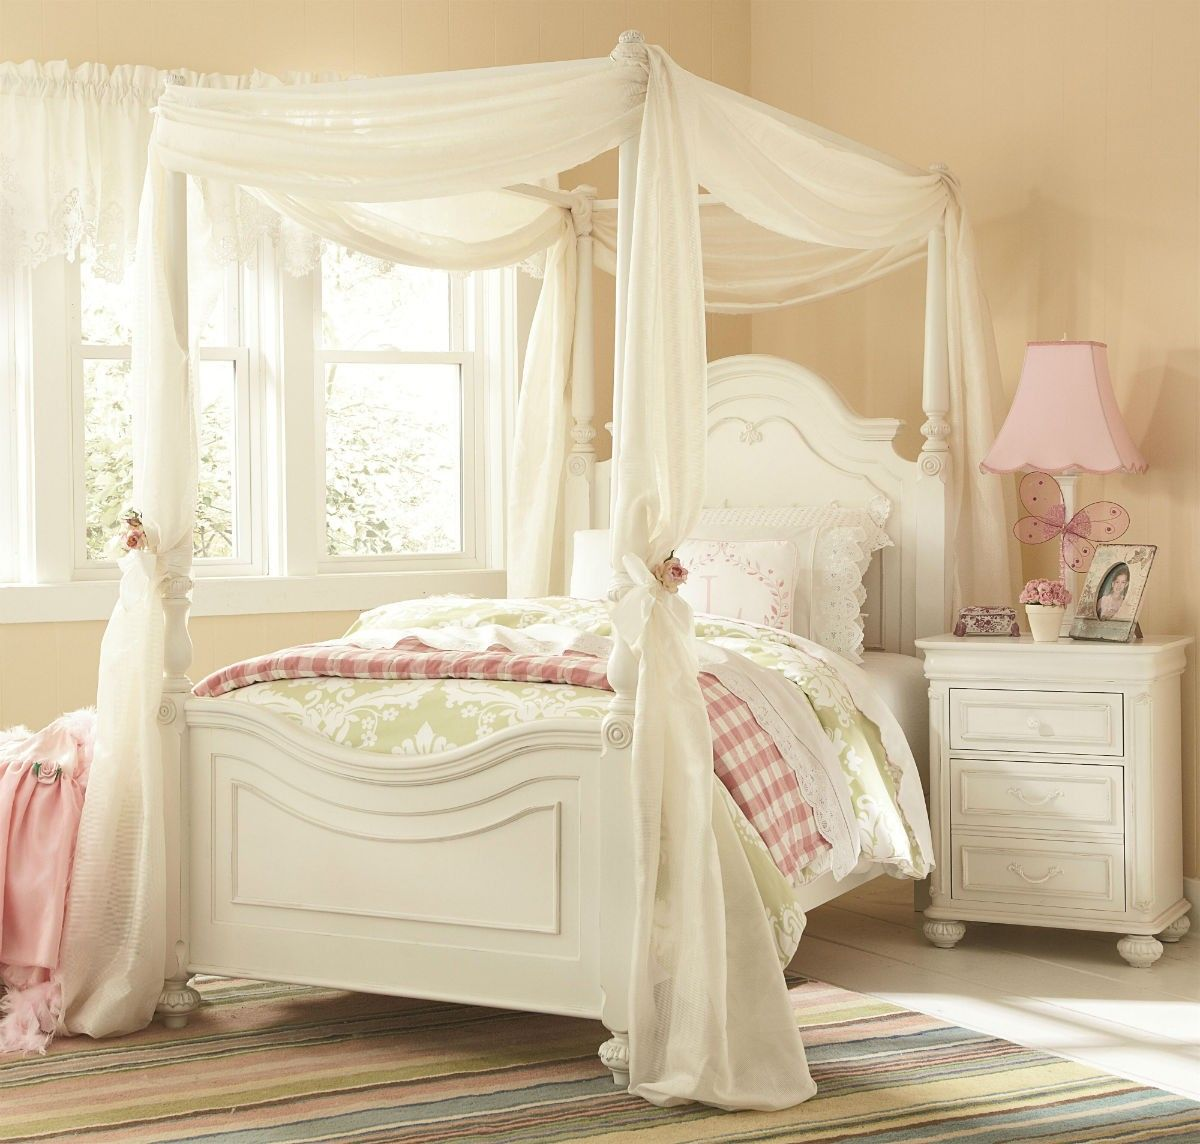 19 Fabulous Canopy Bed Designs For Your Little Princess & 19 Fabulous Canopy Bed Designs For Your Little Princess | Bed design ...